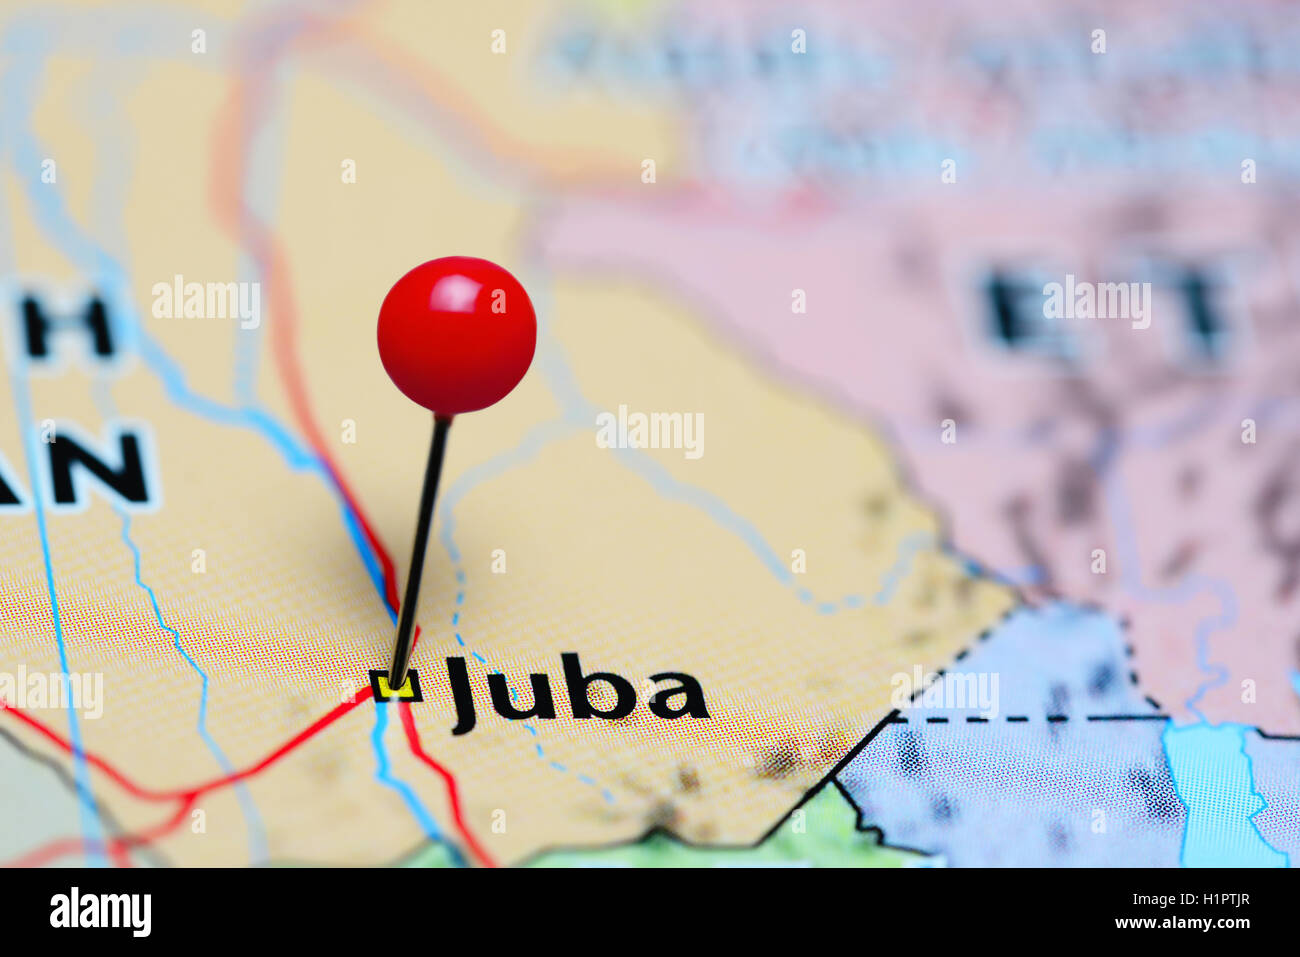 Juba pinned on a map of South Sudan Stock Photo Royalty Free Image